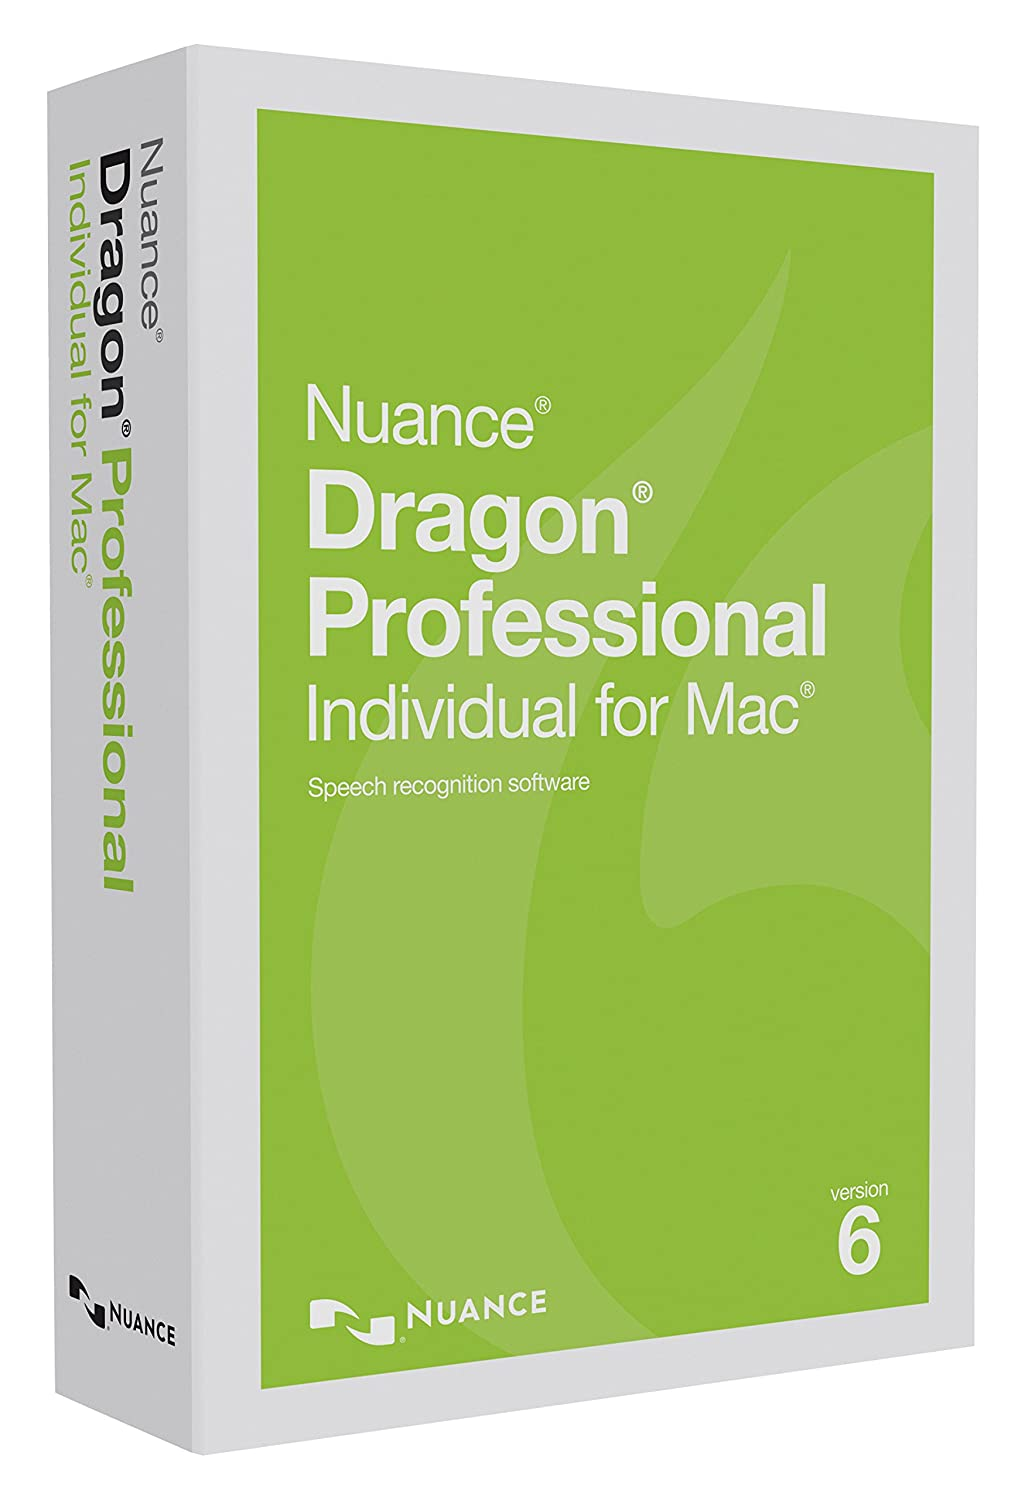 Nuance Dragon Professional Individual for Mac 6.0